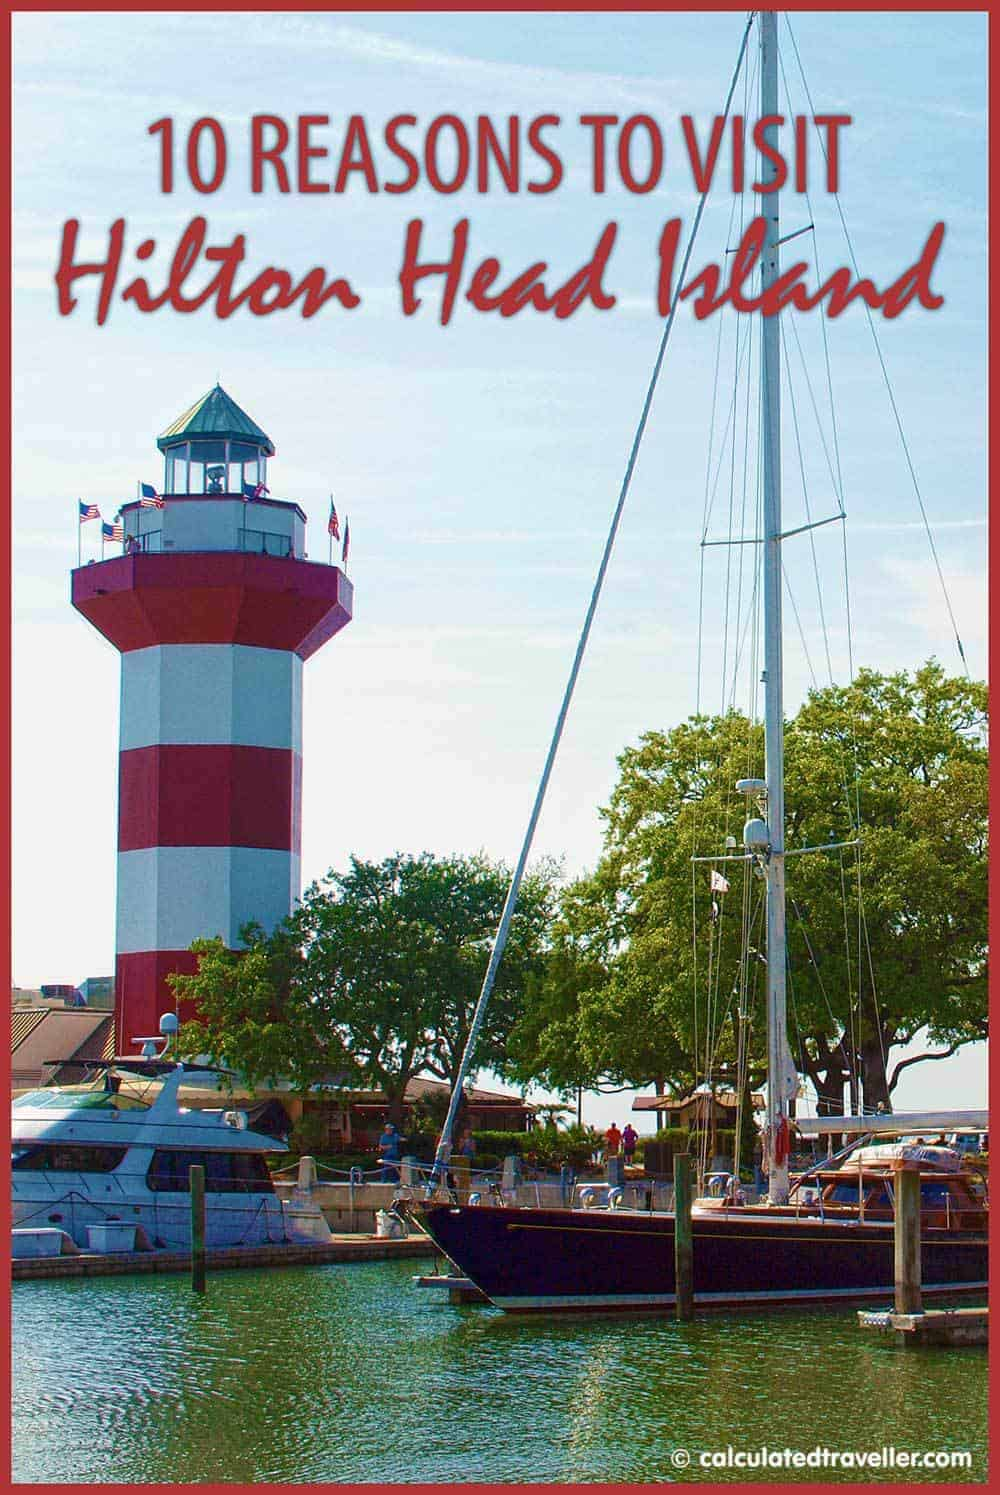 10 Reasons to Visit Hilton Head Island South Carolina - Before or After Your Cruise